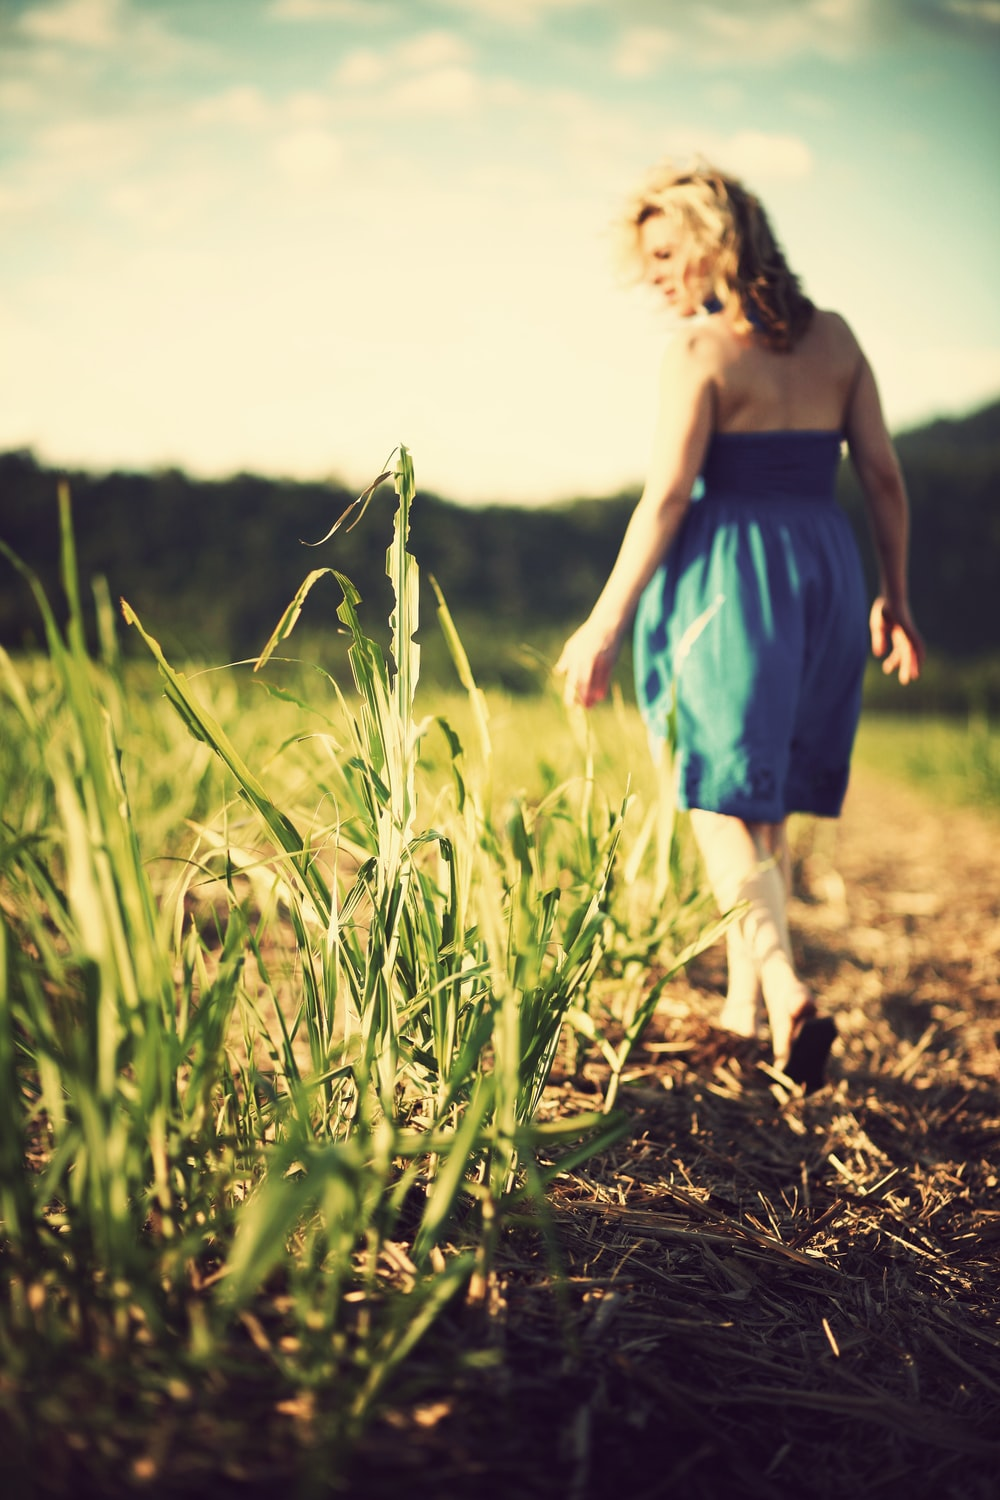 selective focus photo of woman wearing blue dress standing on grass field